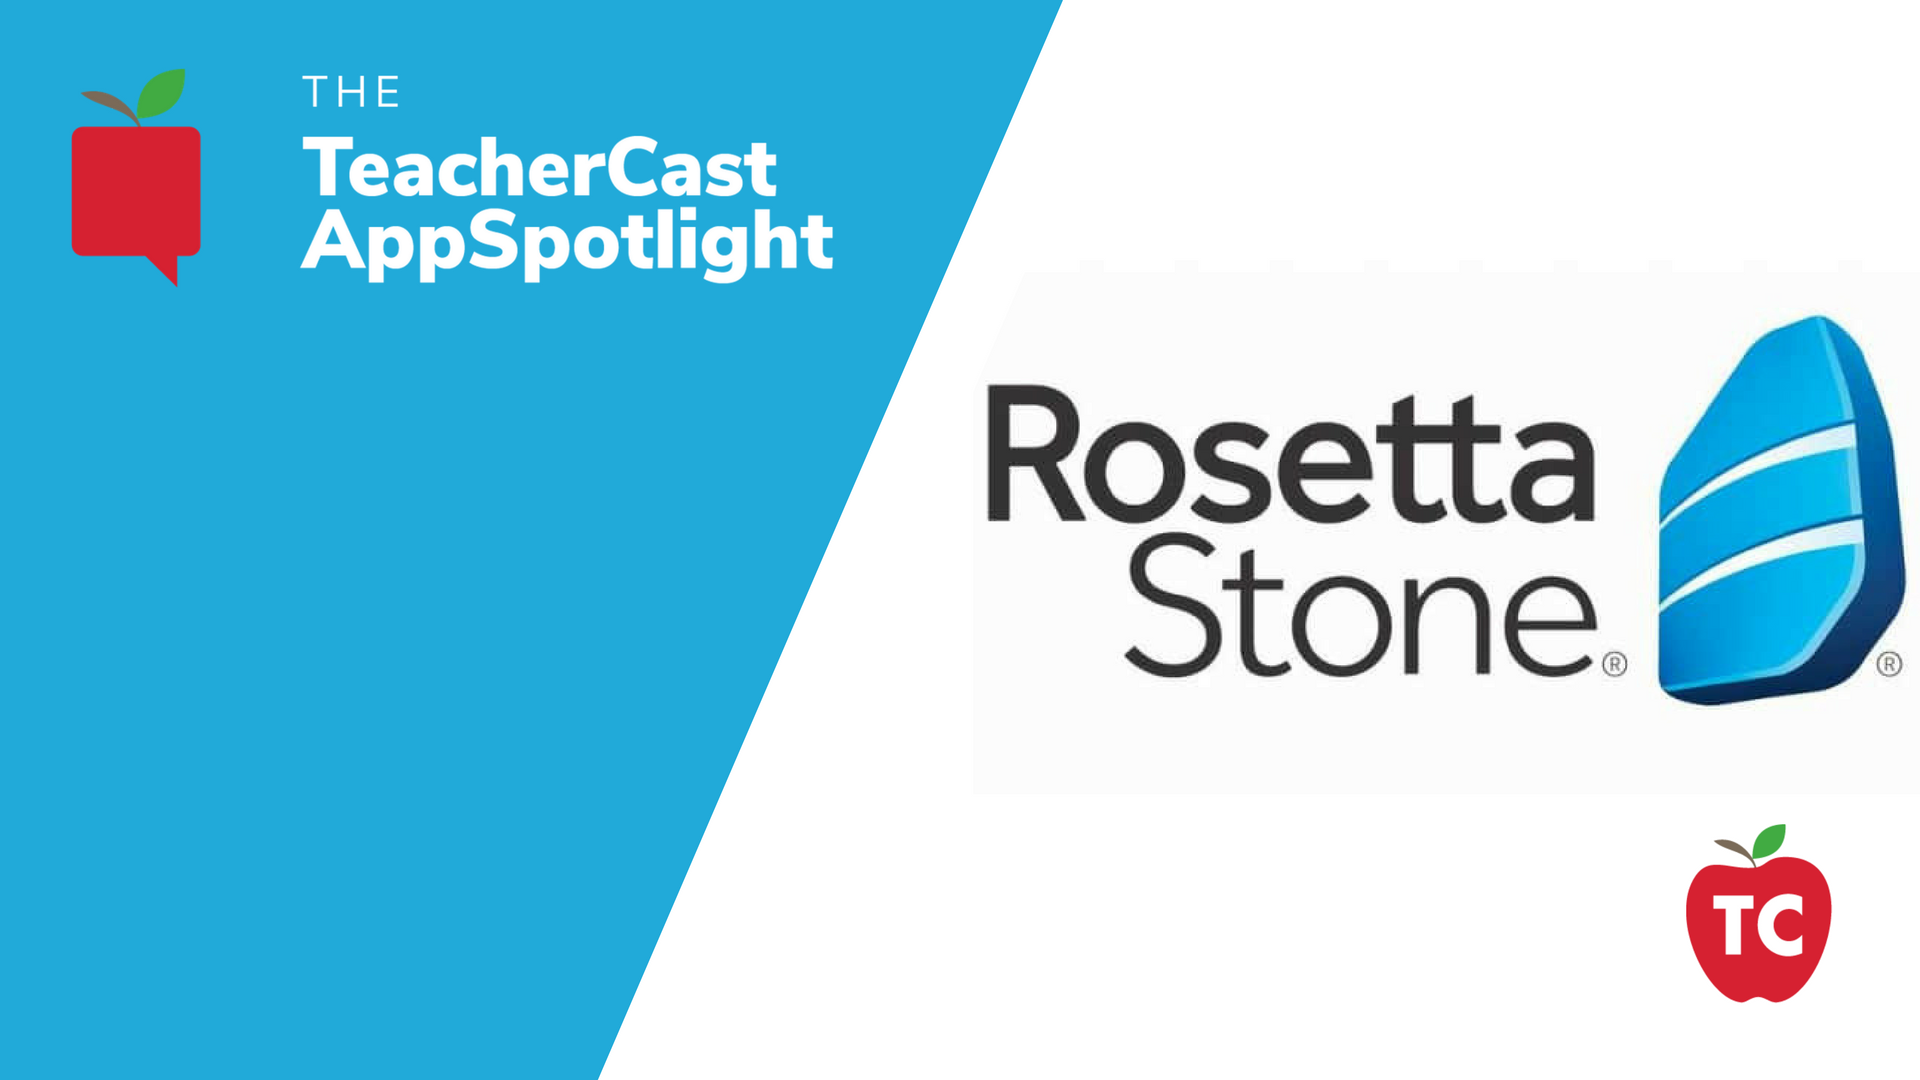 Rosetta Stone: Celebrating 25 years of helping students.